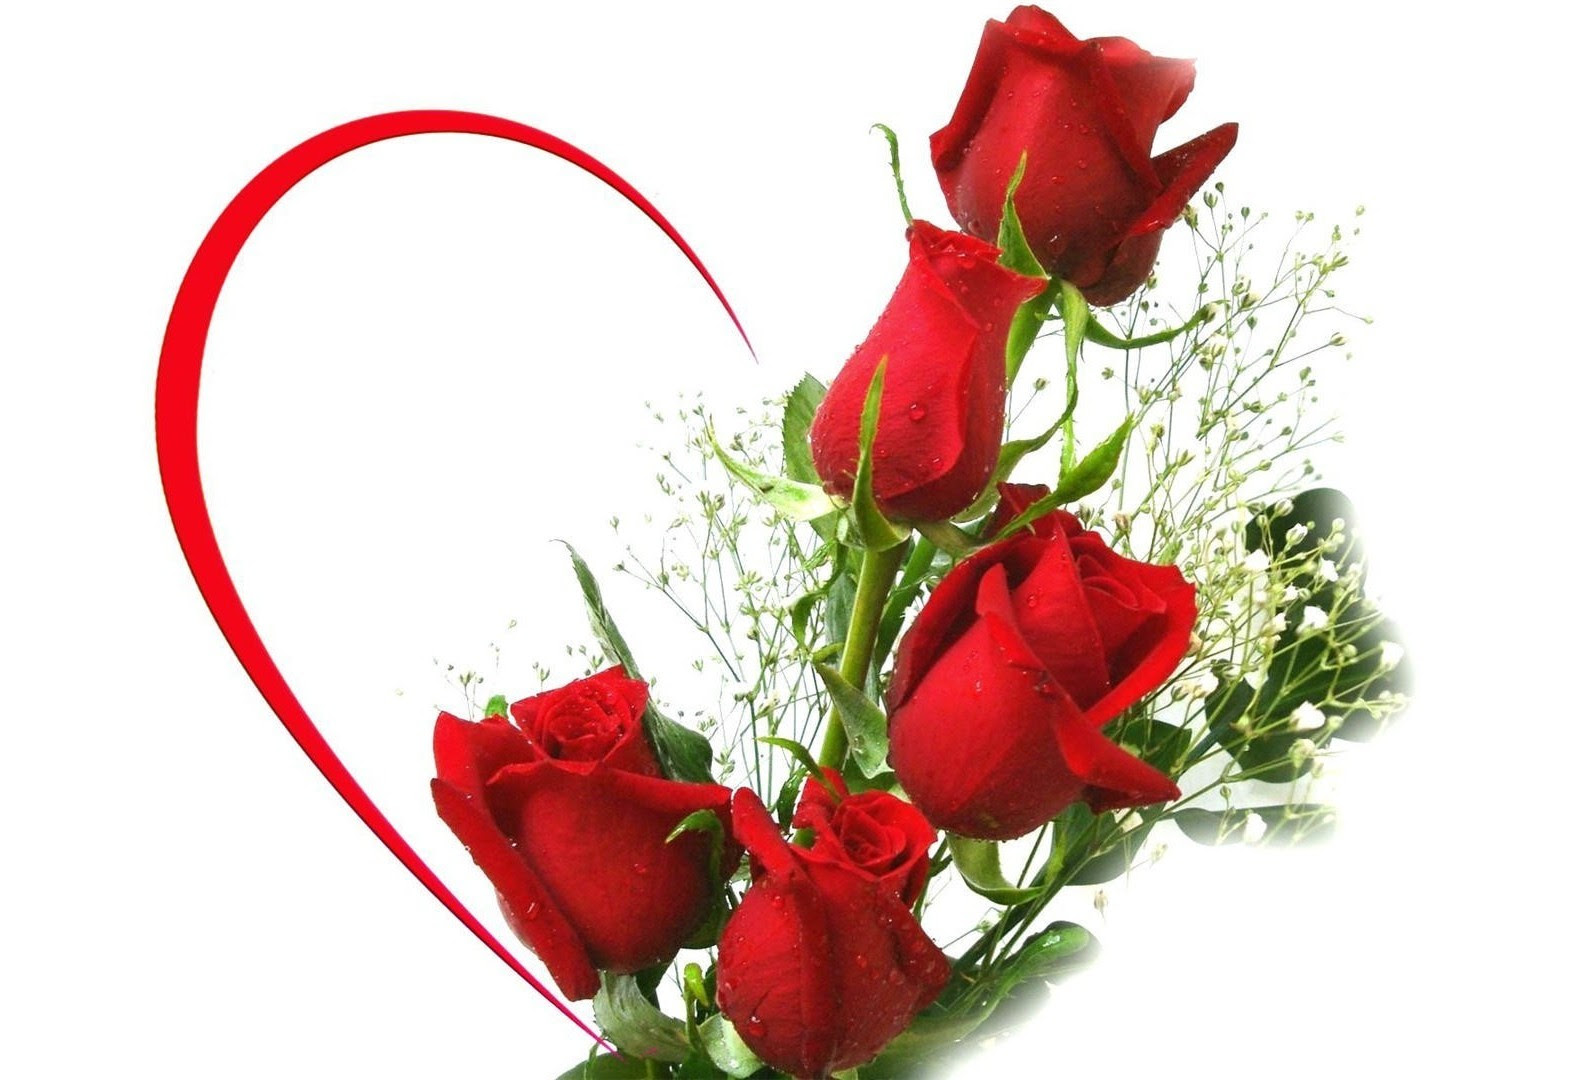 Red Rose Heart Bouquet 15951080 High Definition Wallpaper Daily